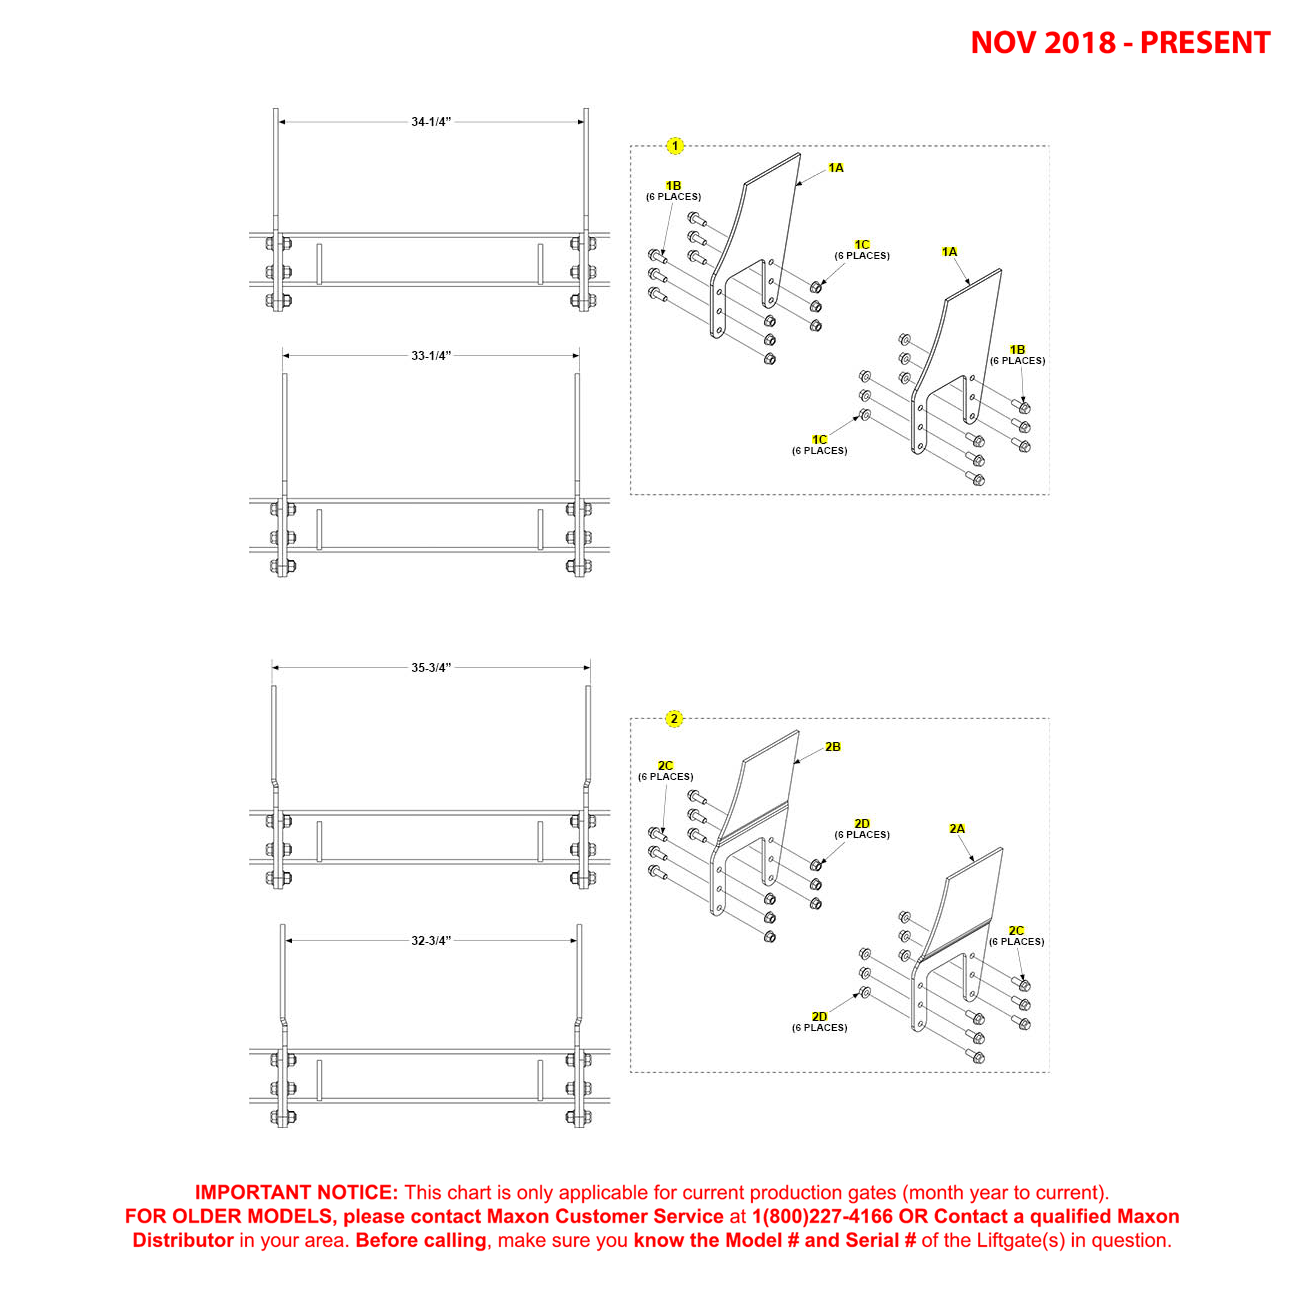 GPT-4/5 (Nov 2018 - Present) Mounting Plates Diagram